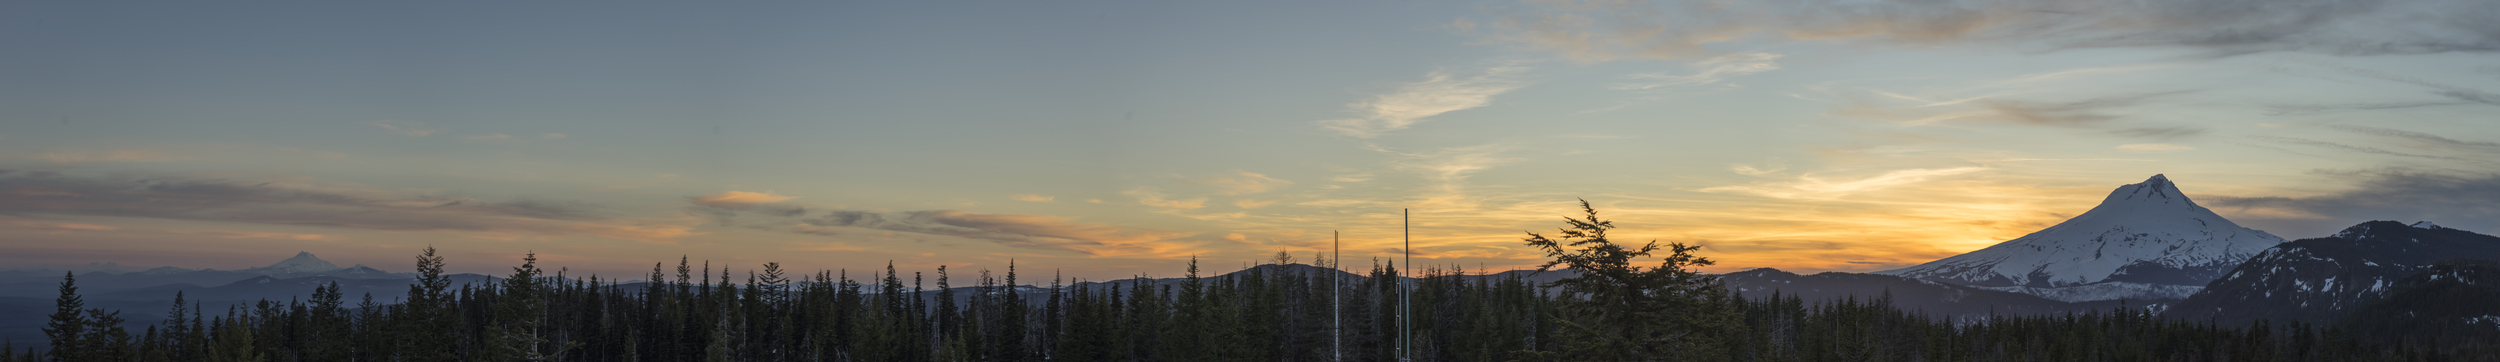 Sunset at Flag Point Lookout tower on the East side of Mt Hood. Broken Top, 3 Sister and Mt Jefferson are to the South.